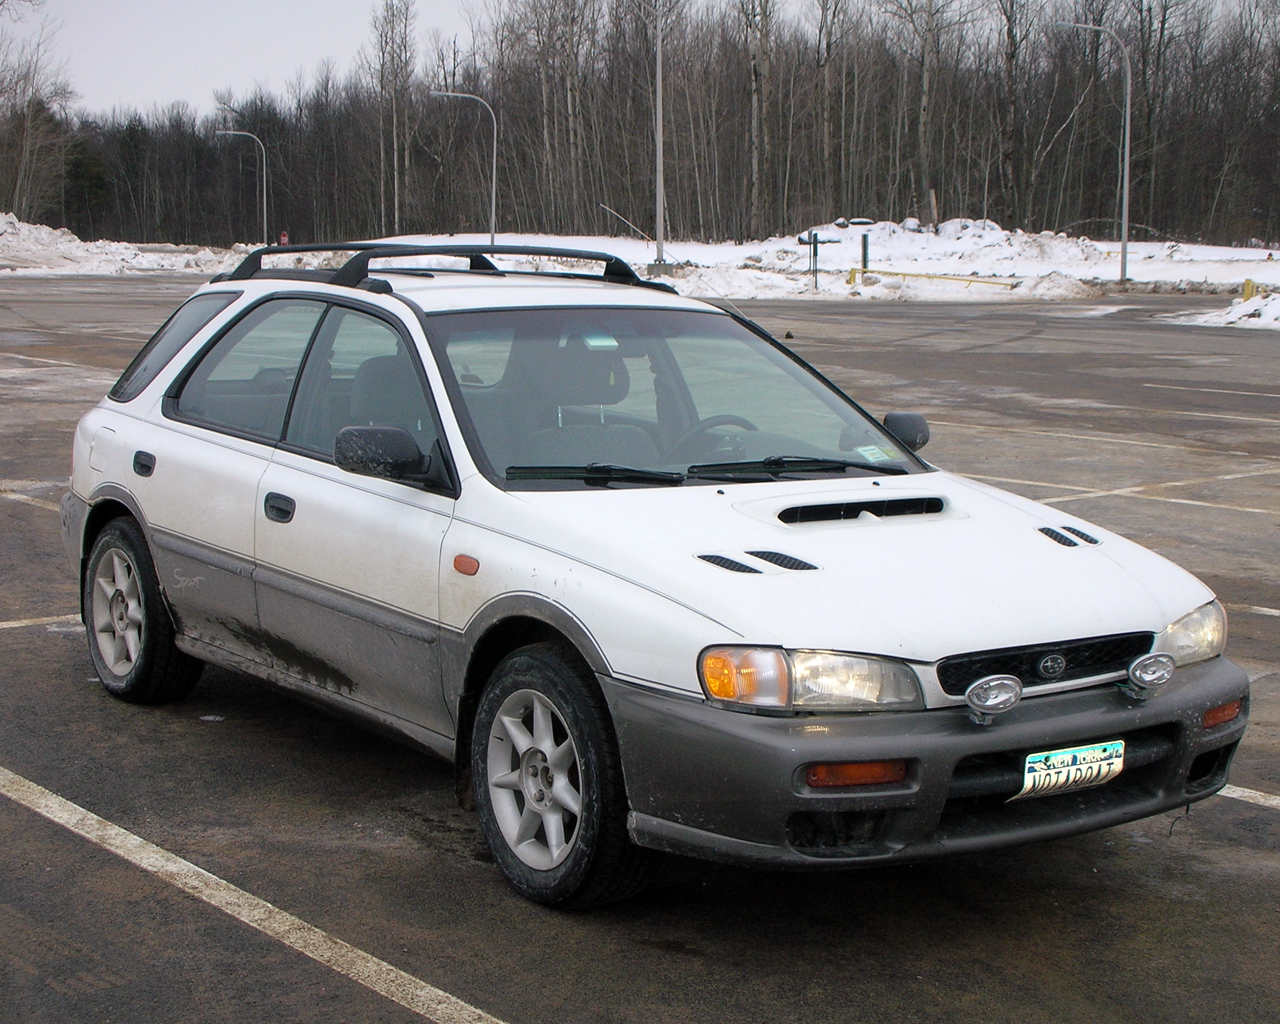 Dan mandles carputer 1997 subaru outback sport i love my car i got my subie july 2005 and ive been driving the daylights out of it since vanachro Choice Image